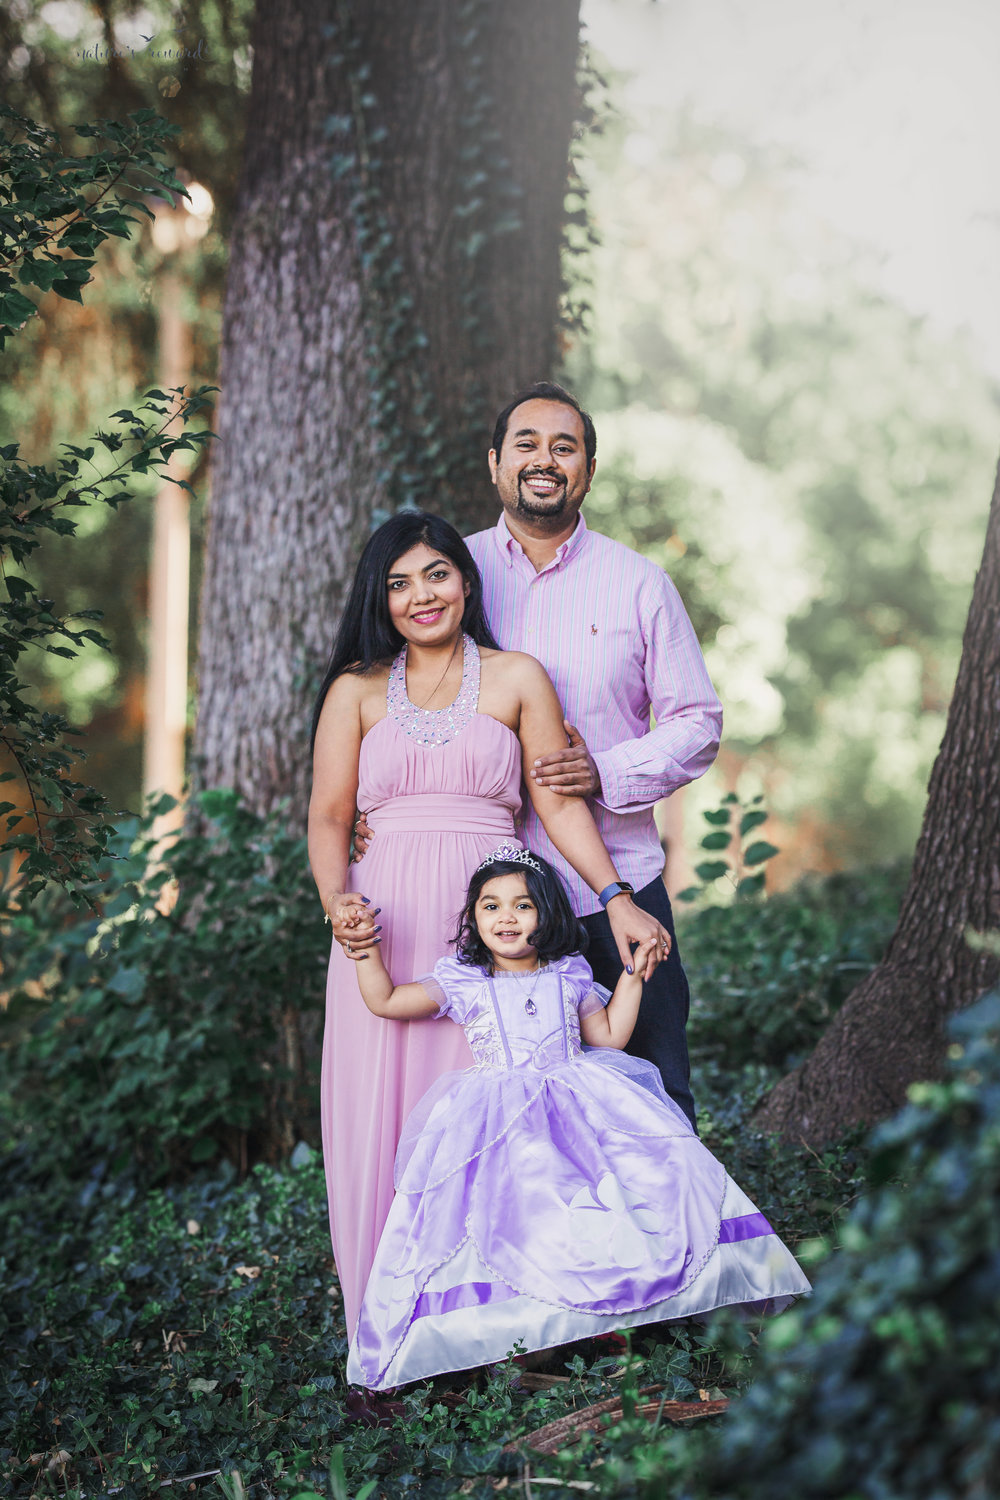 She is 3, family portrait by Nature's Reward Photography